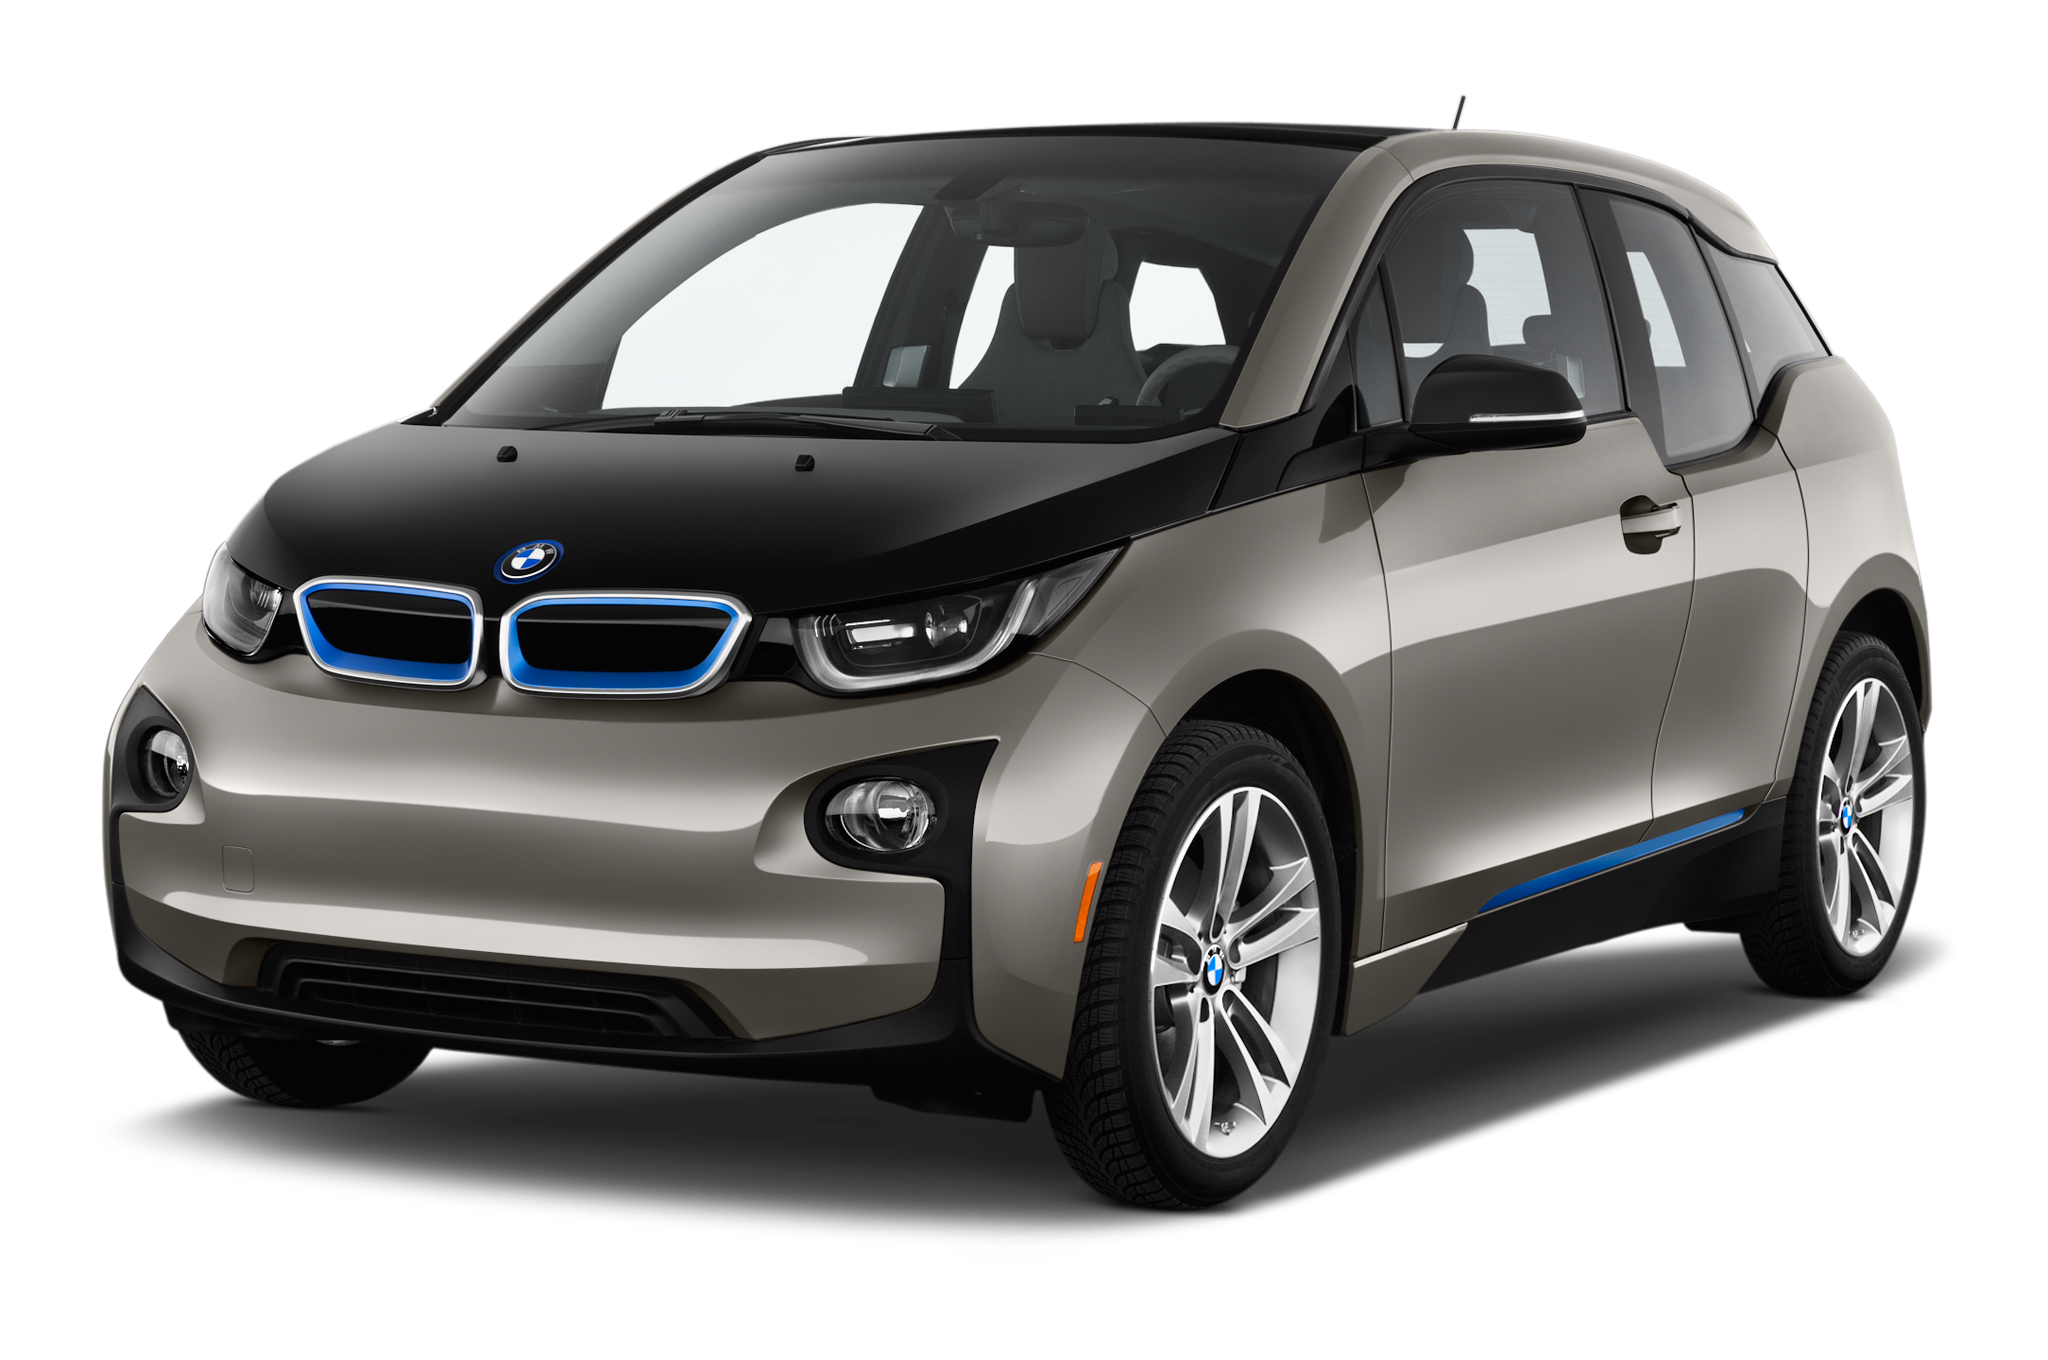 Clipart car no background image transparent library BMW i3 PNG Clipart - Download free images in PNG image transparent library